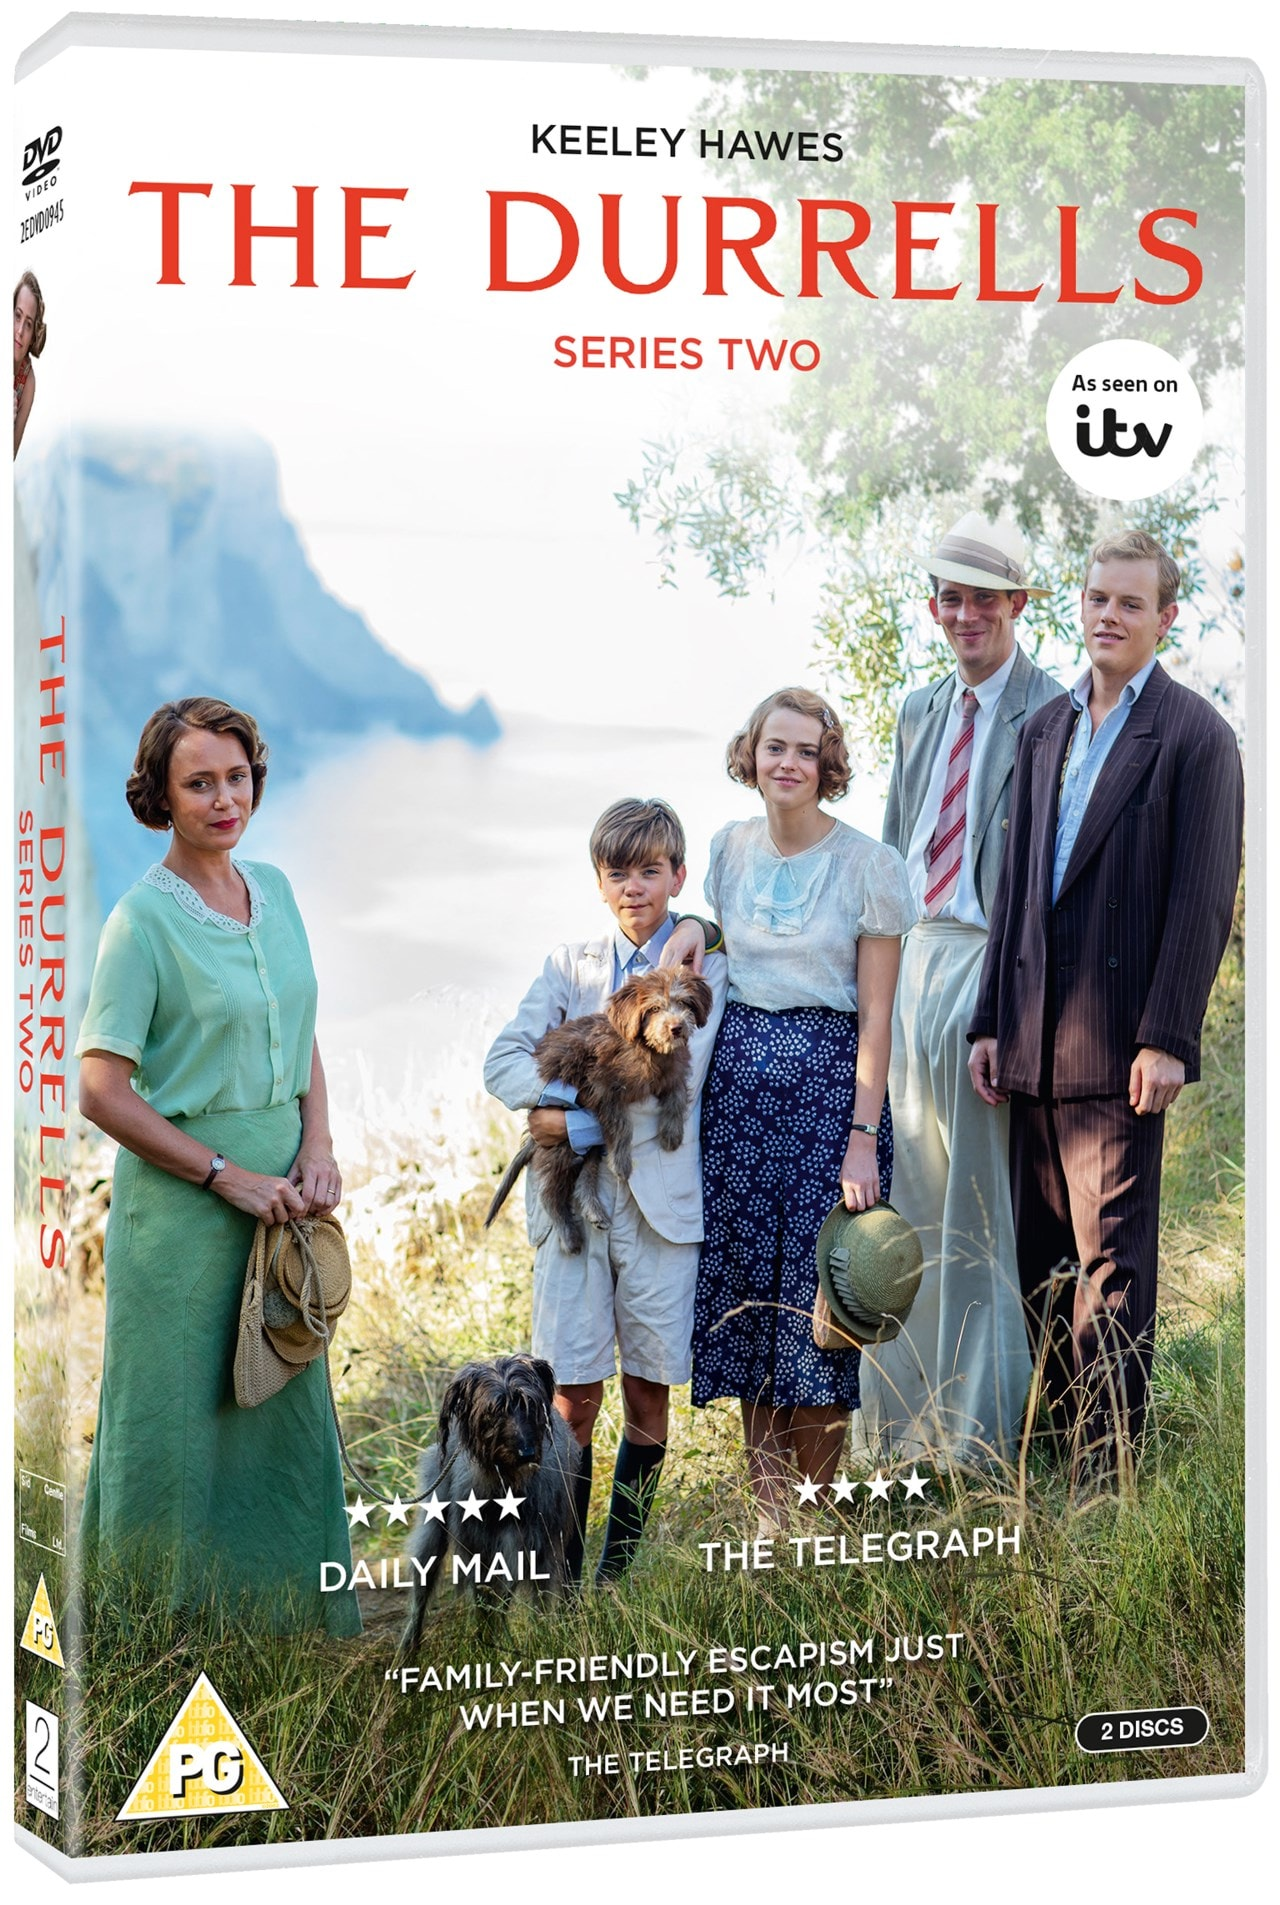 The Durrells: Series Two - 2